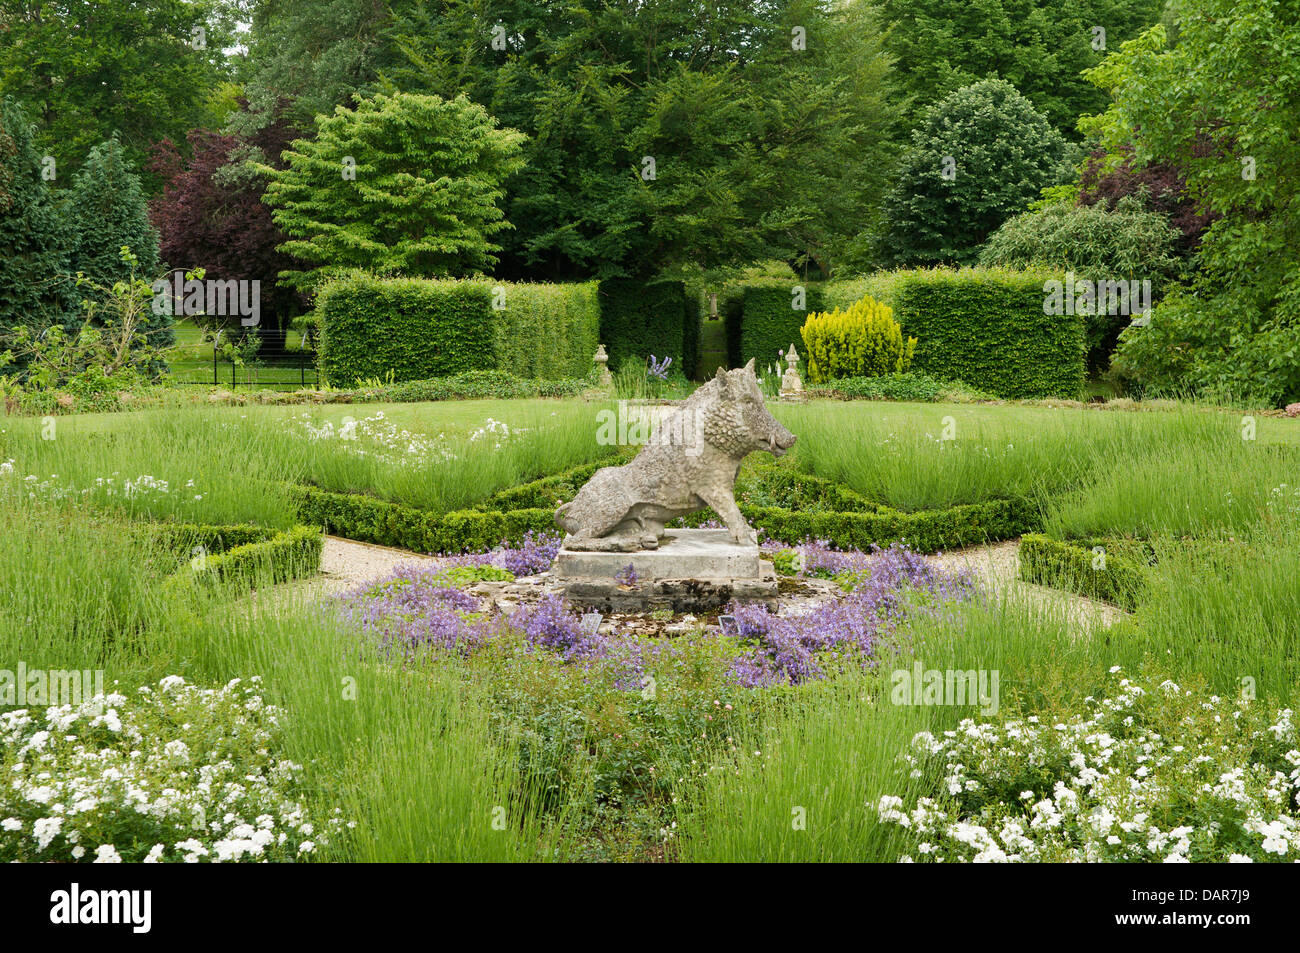 Stock Photo   Stone Hog Statue In Garden With Box Hedge Borders And  Lavender Plants In Ampney Park, 17th Century English Country House